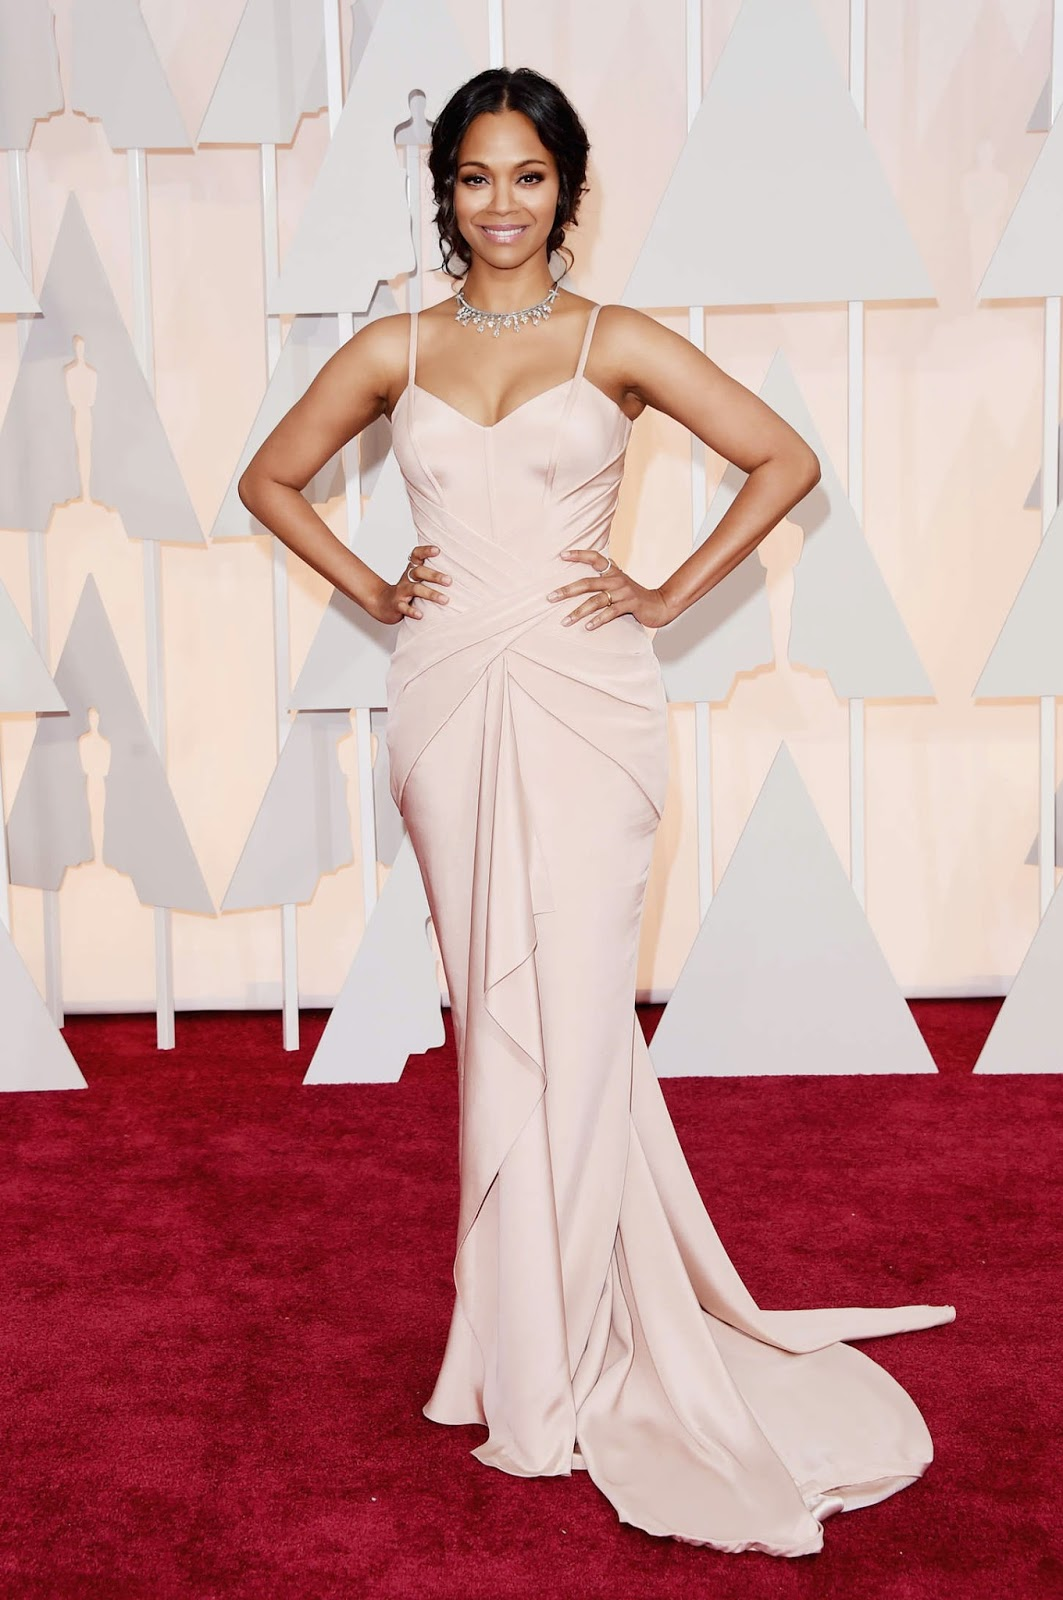 Zoe Saldana flaunts curves in Atelier Versace at the 2015 Oscars in Hollywood